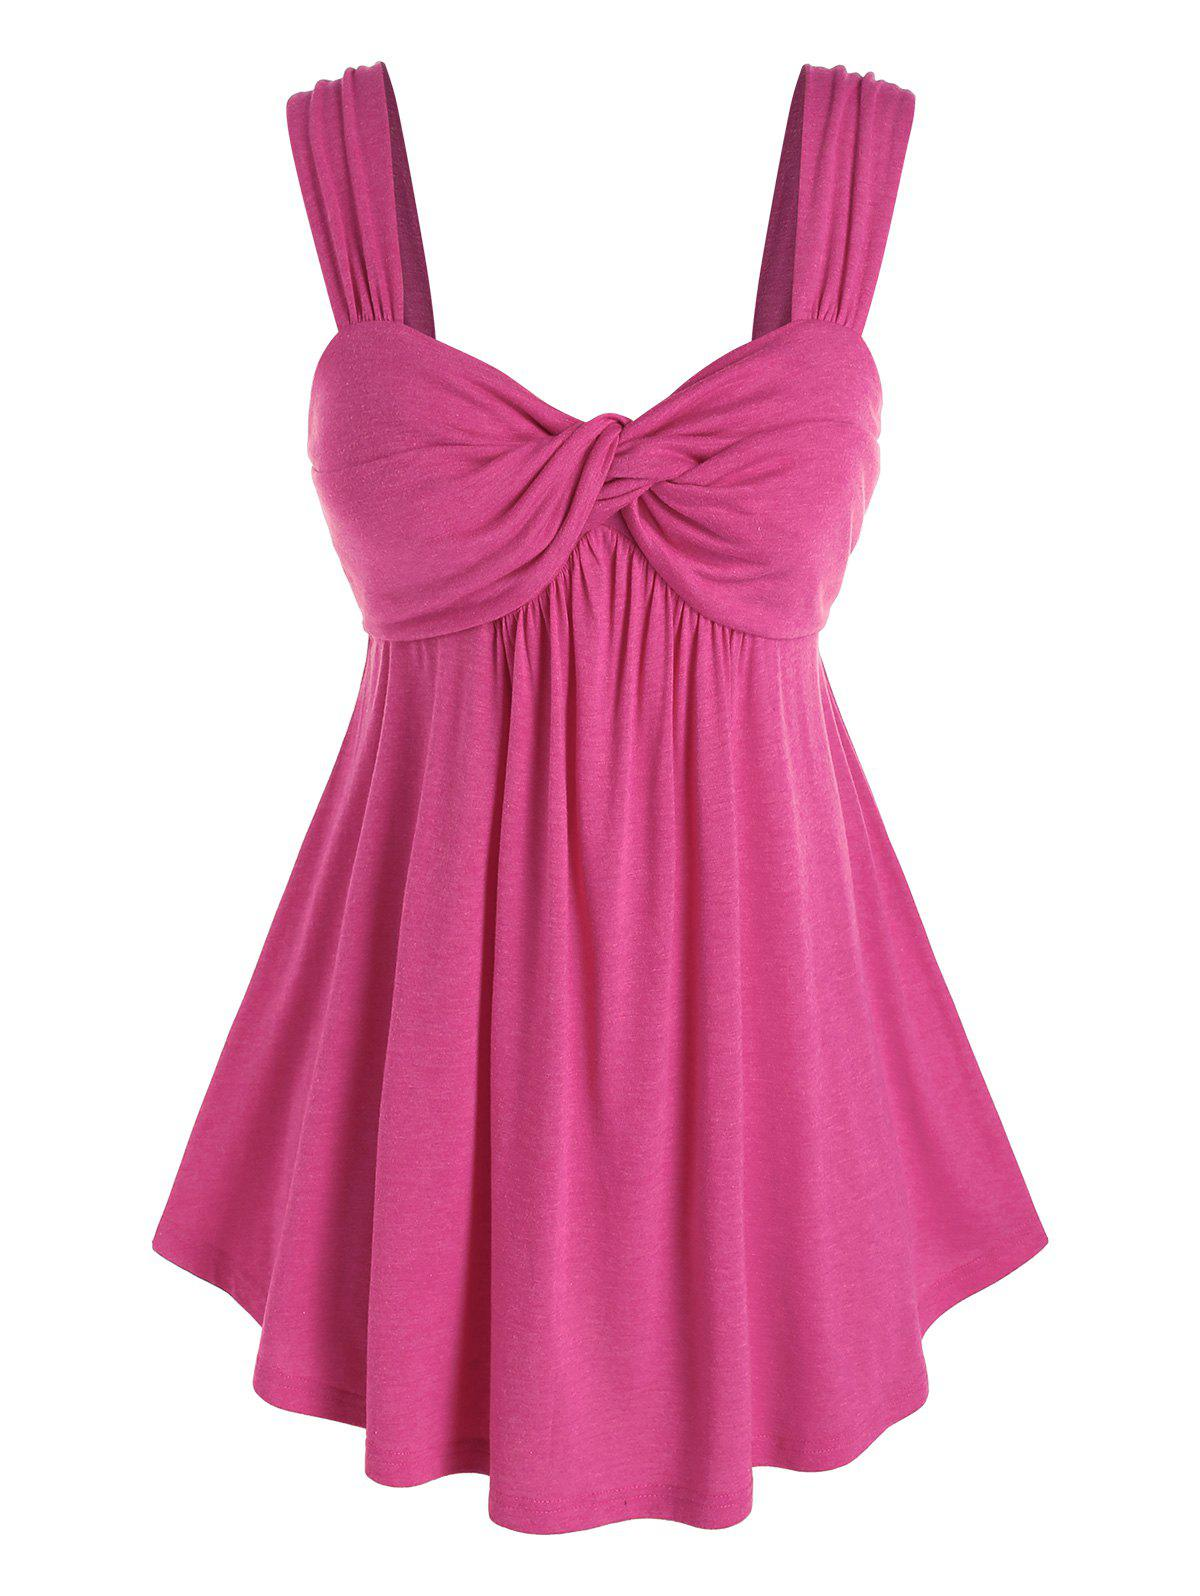 Plus Size Sweetheart Neck Front Twist Tank Top - LIGHT PINK 5X